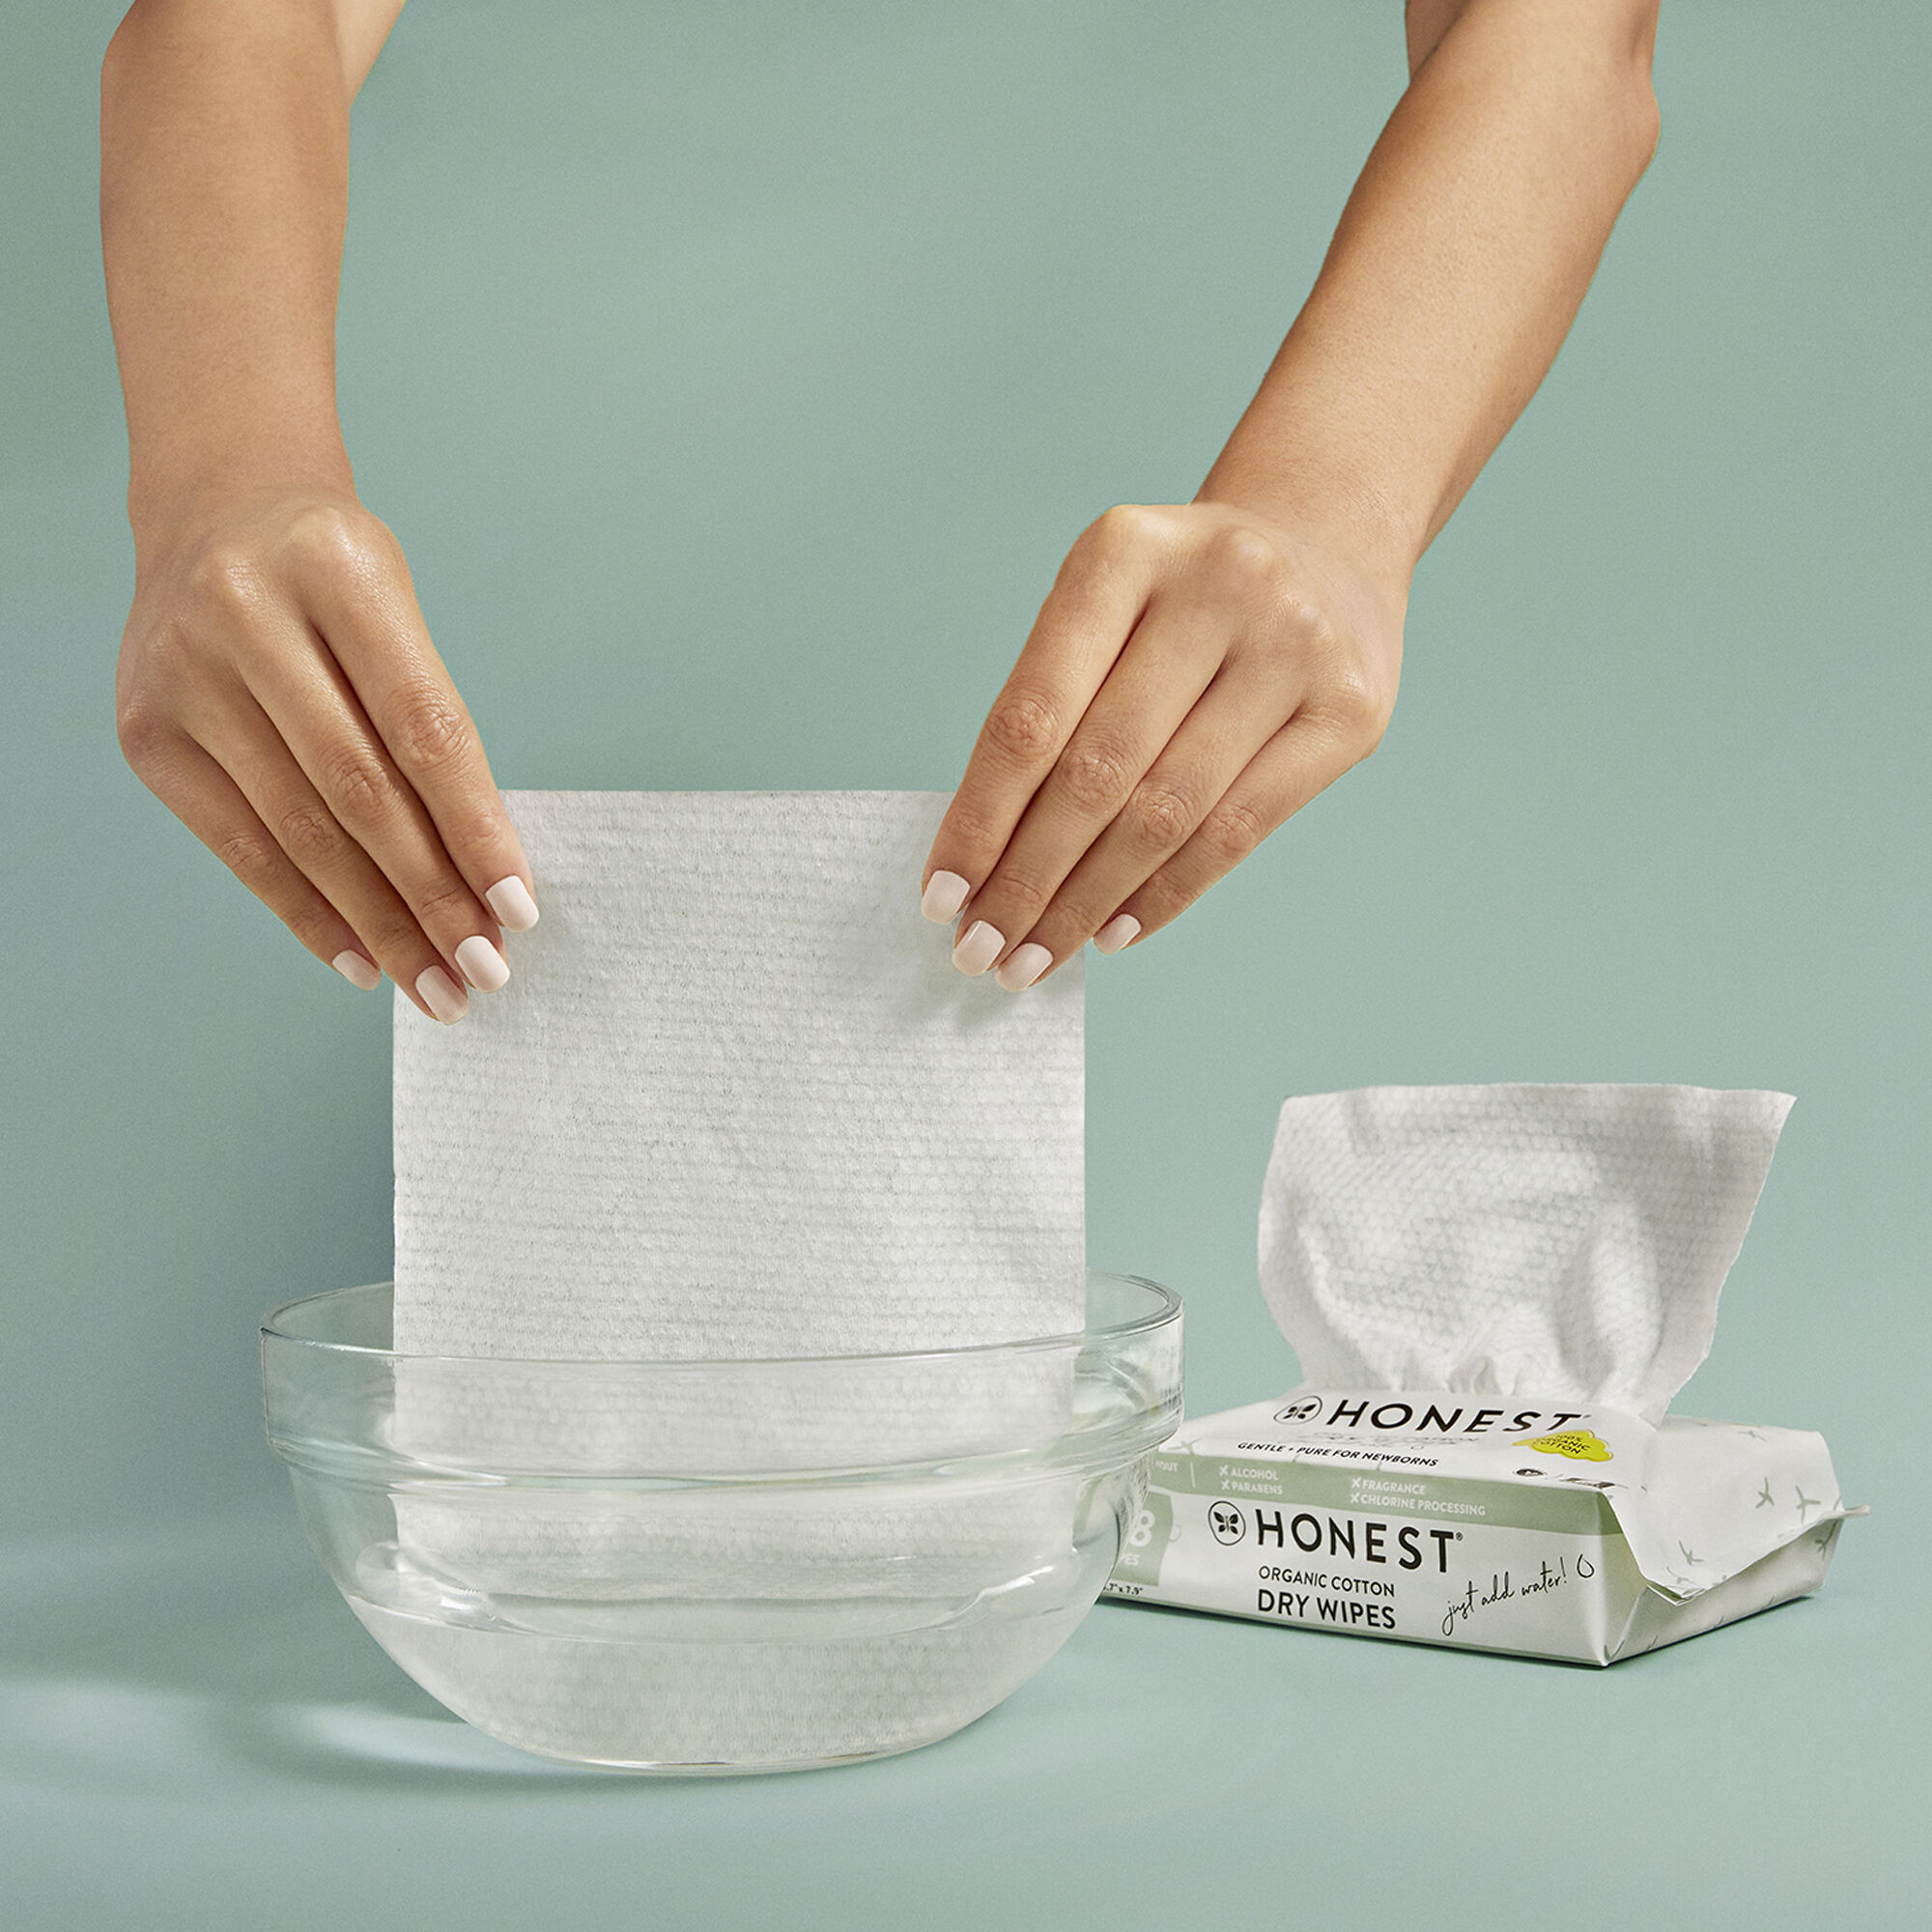 Honest Dry Wipes, 48 Count